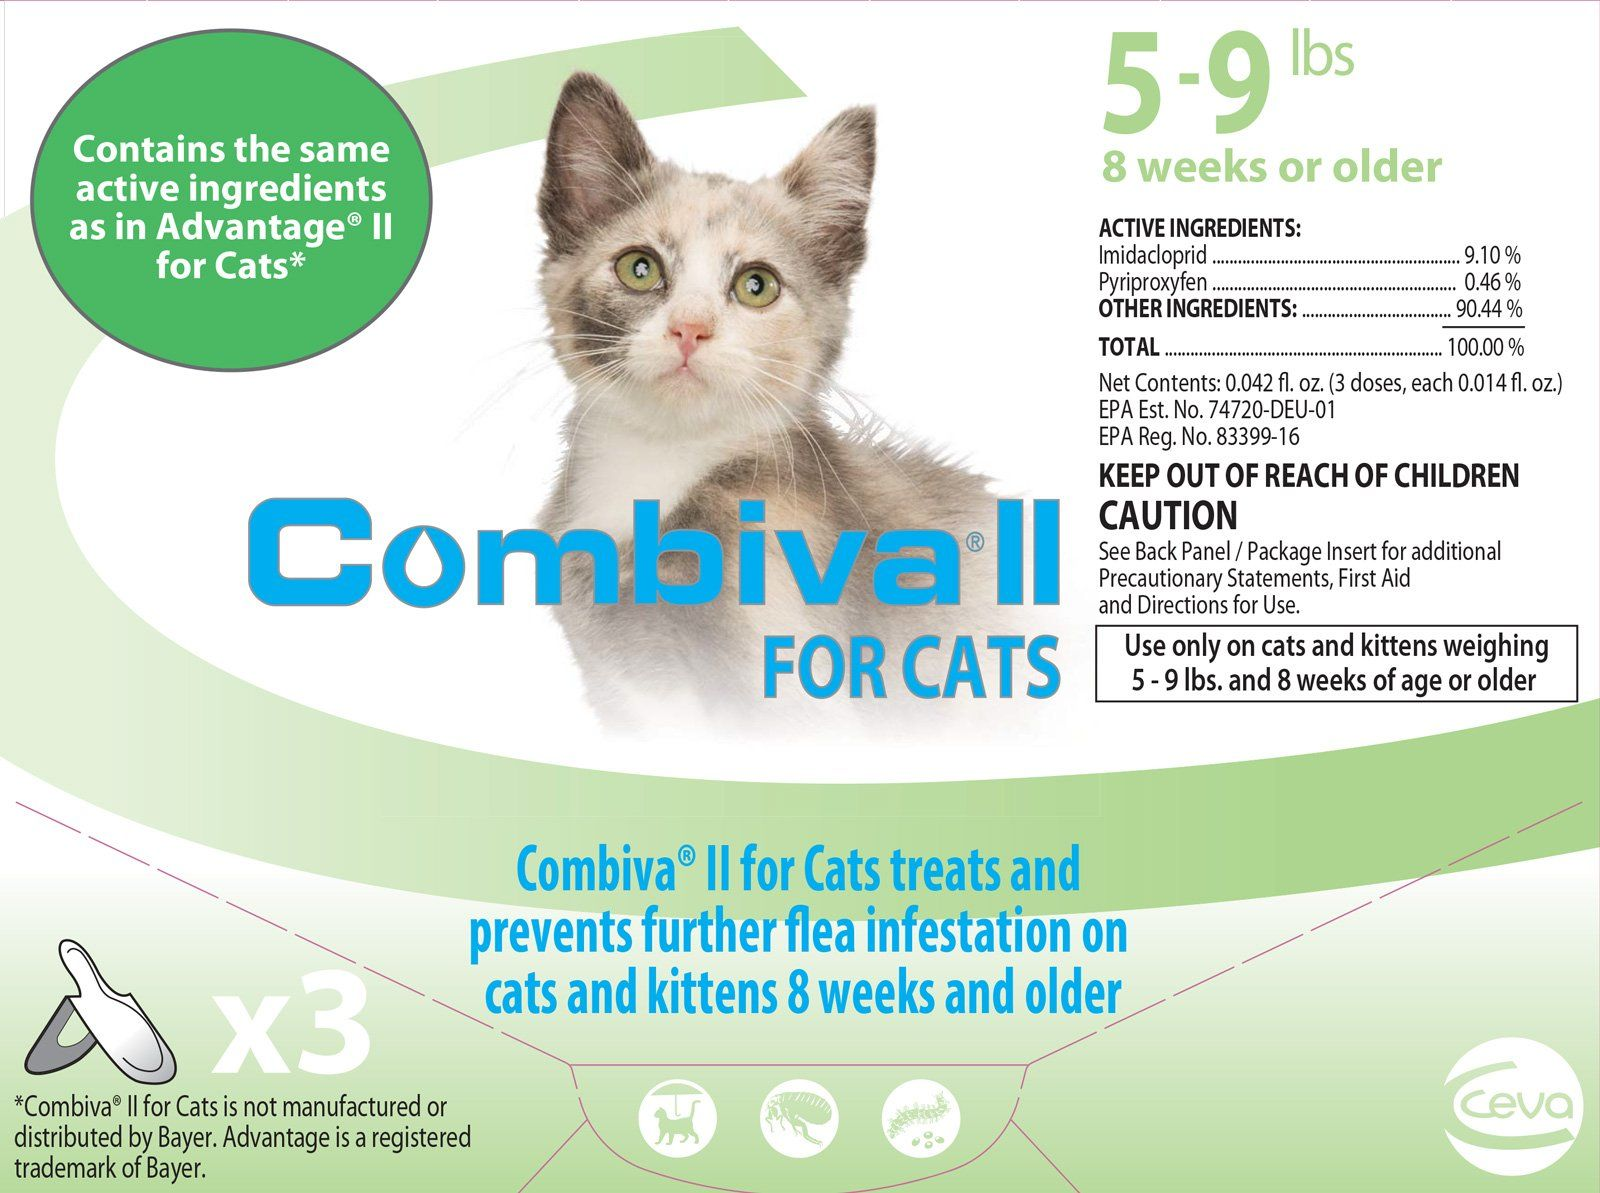 Combiva Ii For Cats 5 9 Lbs By Combiva Ad Ii Ad Combiva Lbs Cats Cats Cat Fleas Fleas